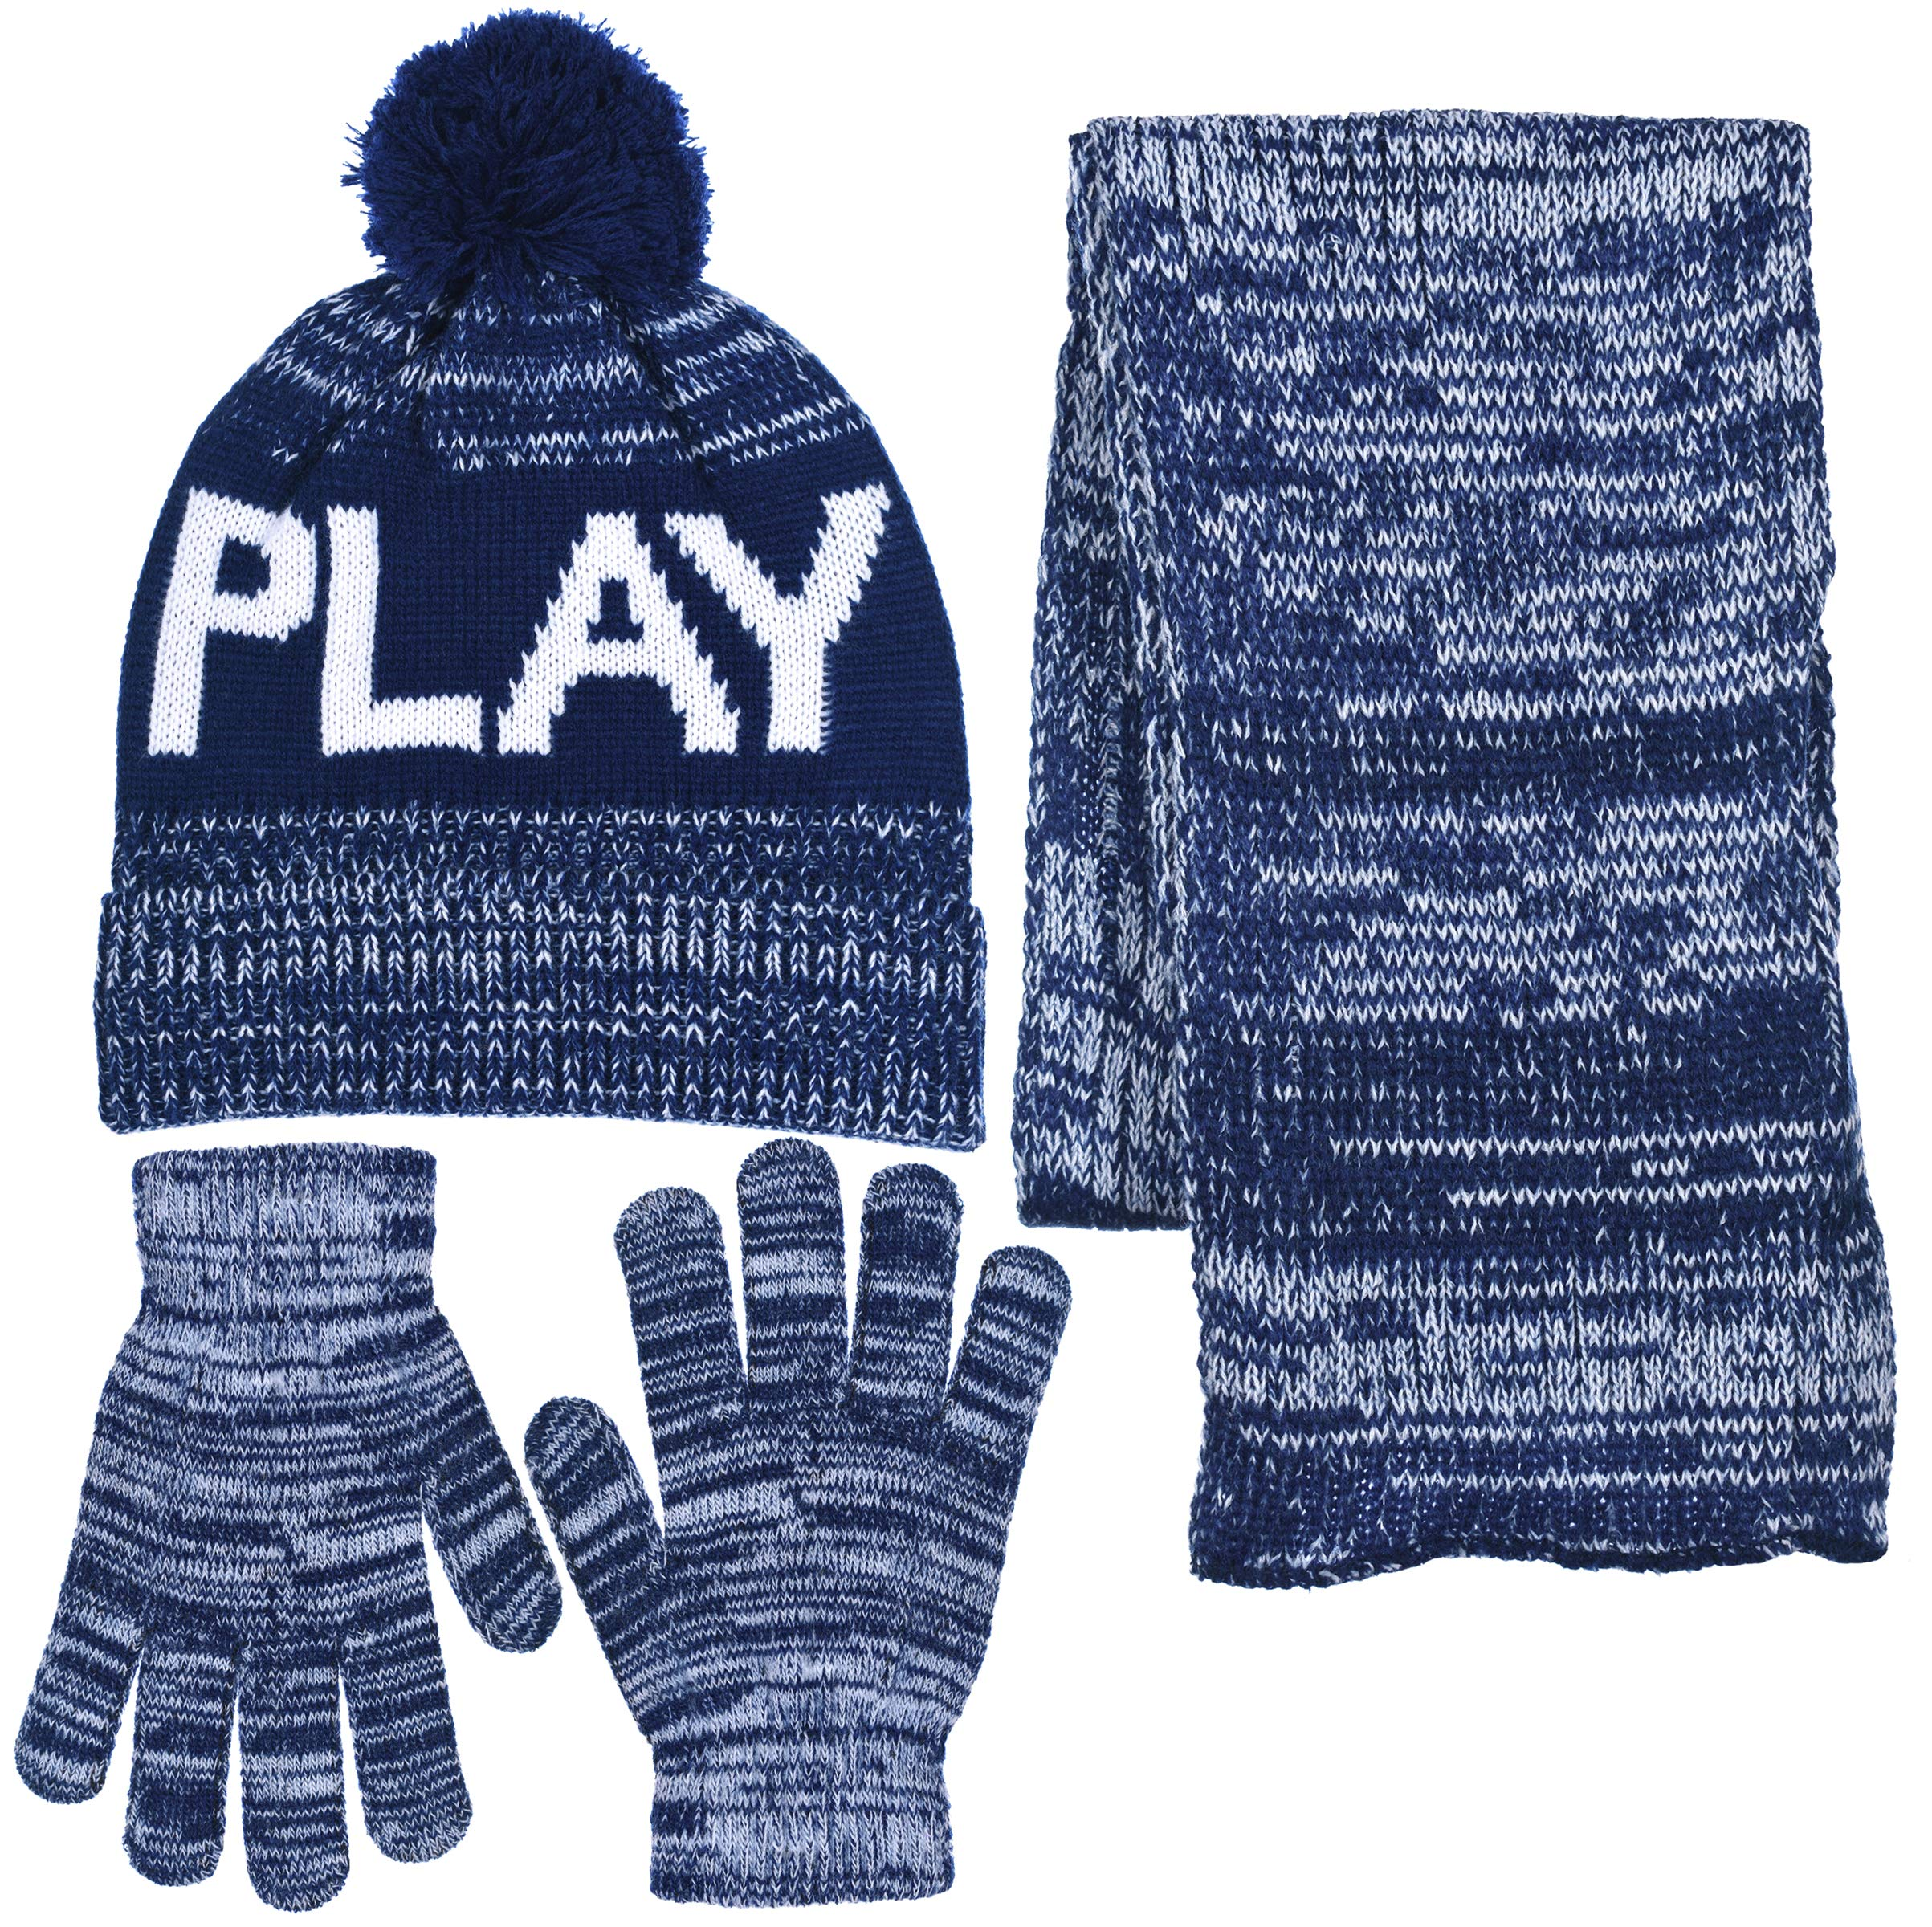 Boys Personality 3 Piece Knit Cuffed Pom Beanie Scarf & Gloves Set 3 Colors (Play - Navy Blue)